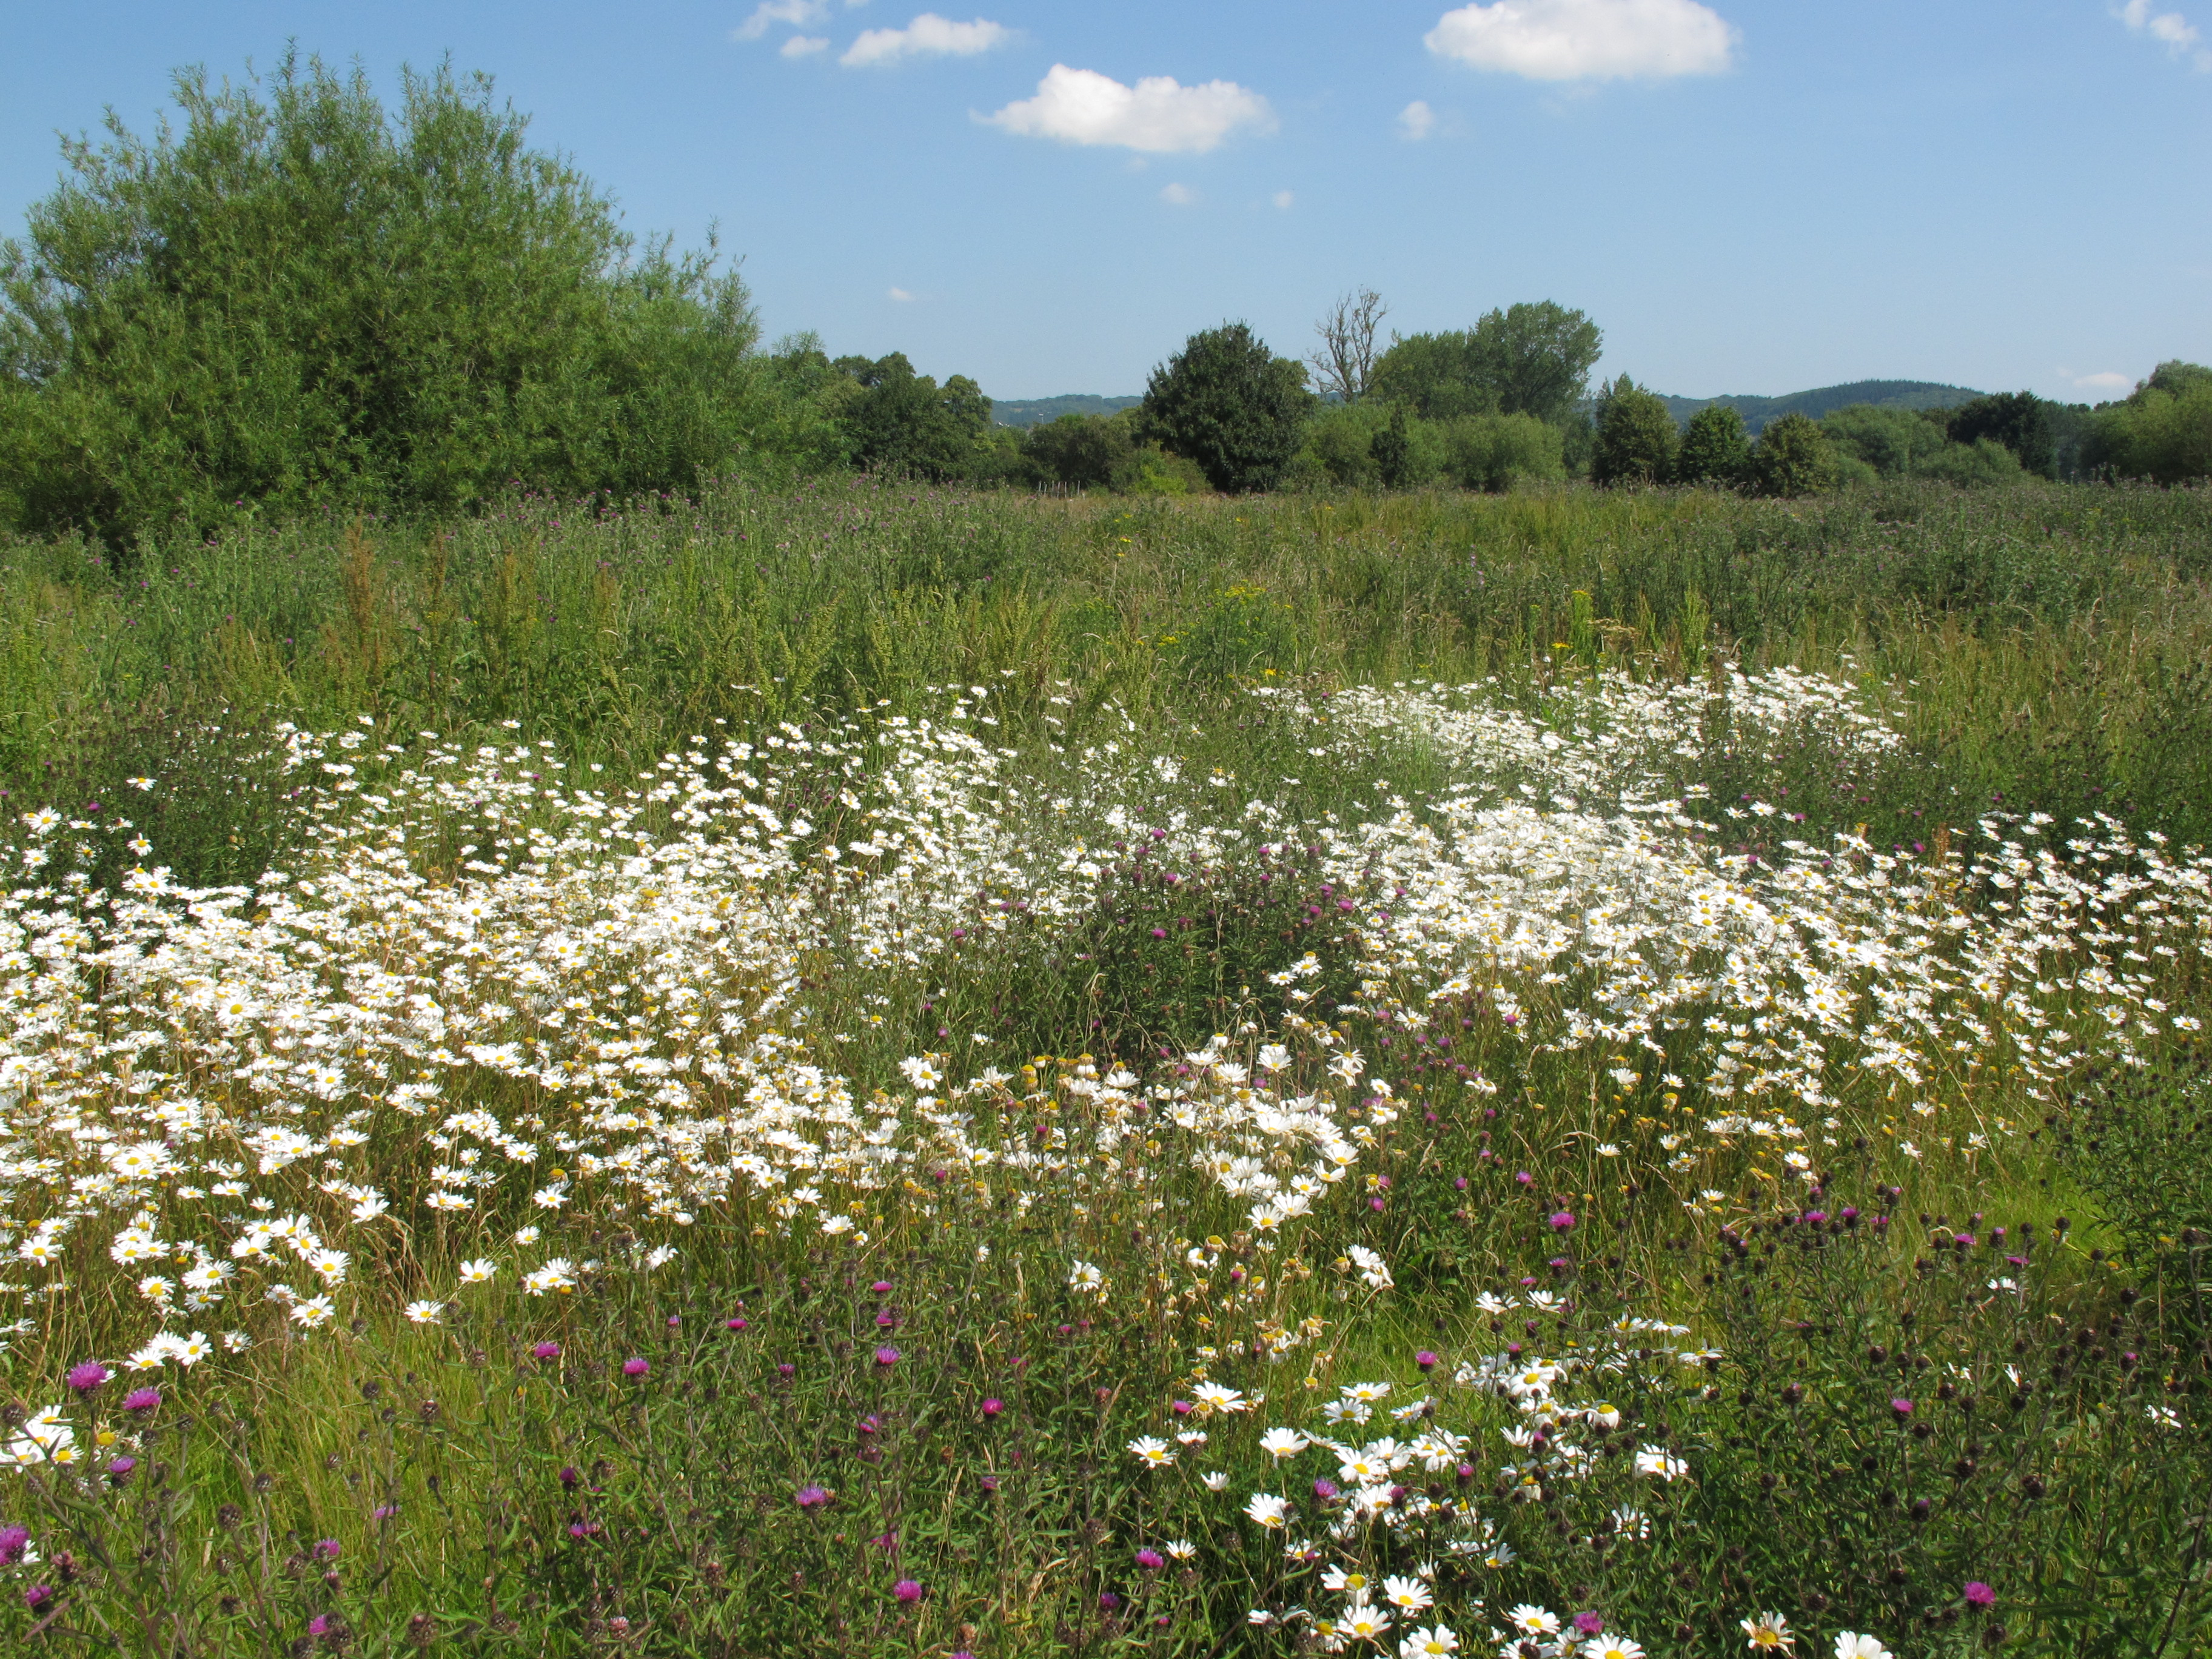 File:Two River Meadow 8.JPG - Wikimedia Commons